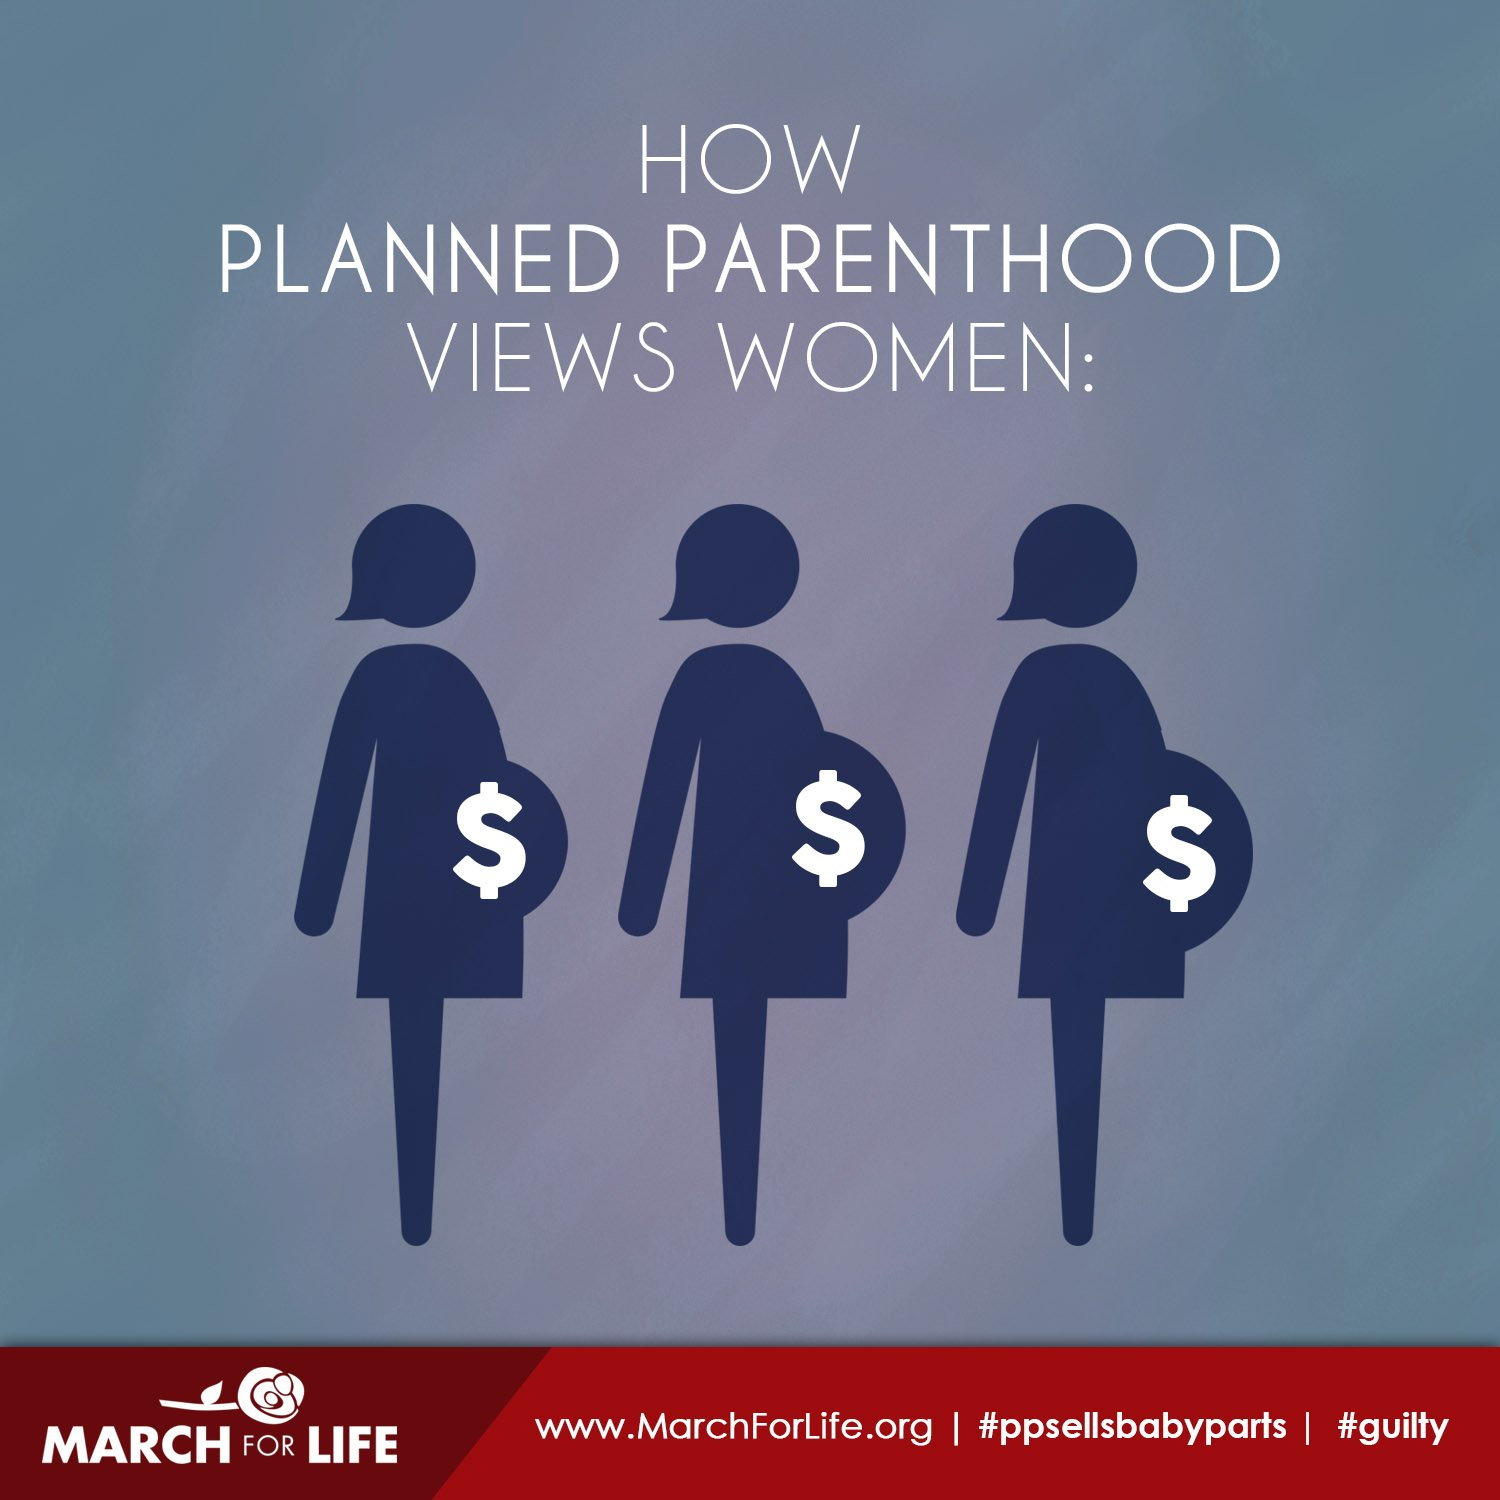 .@MFLAction Over 320,000 abortions are performed at #PlannedParenthood each year. #prolife #redirectthefunds https://t.co/8qleDP1MQp